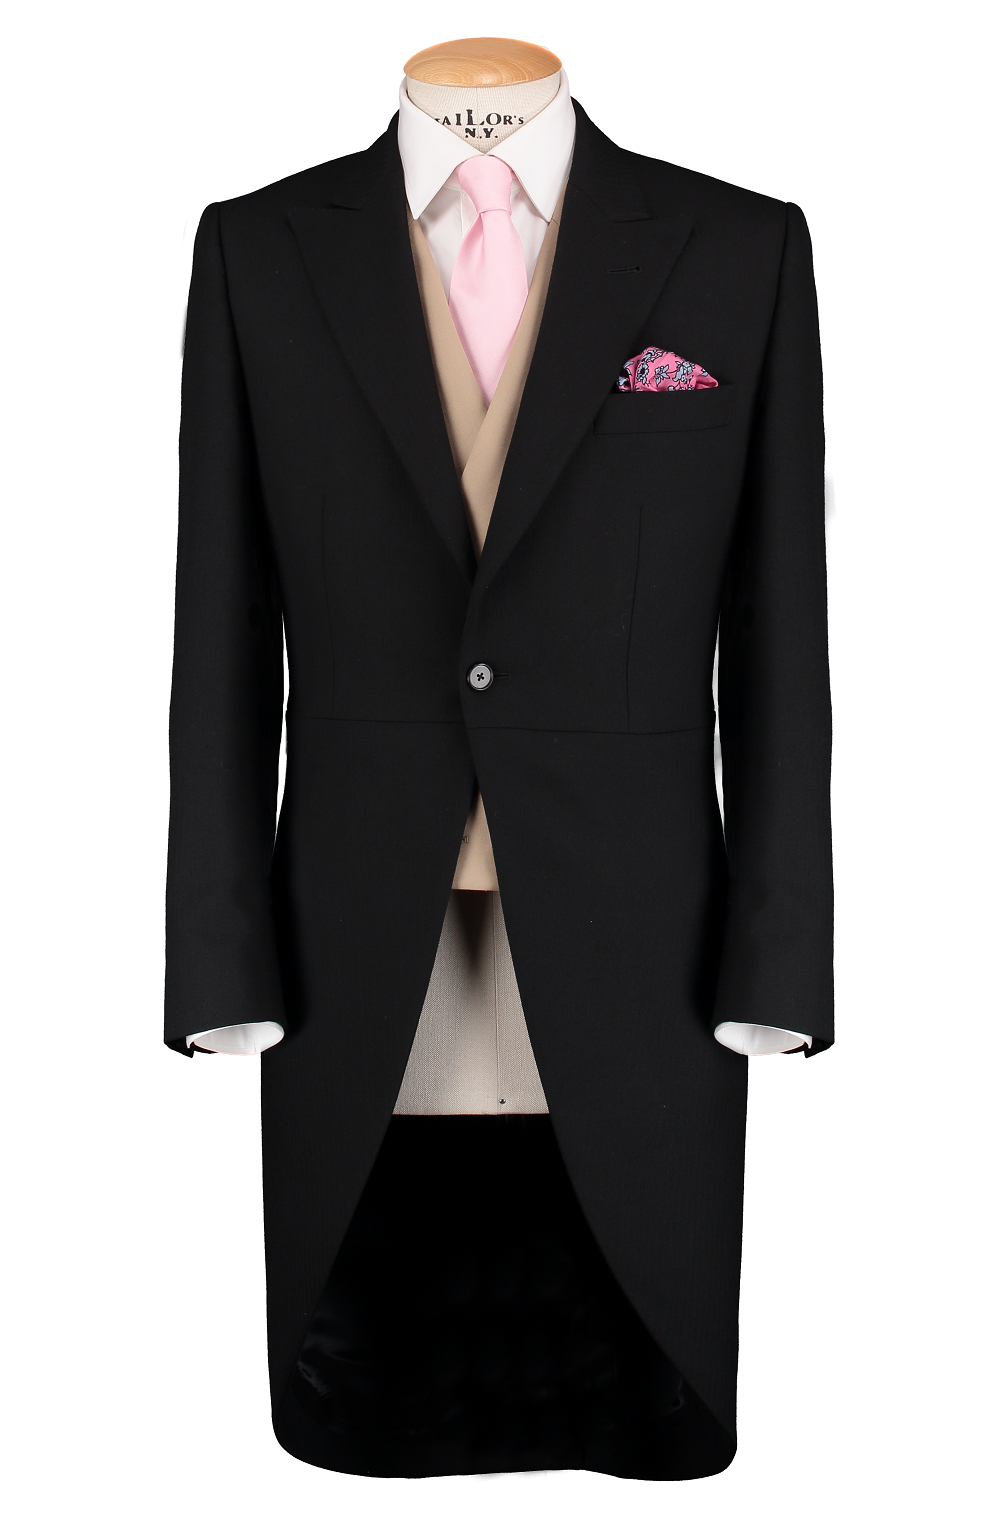 HW Black Morning Suit - Pinstripe with Double Breasted Beige Waistcoat